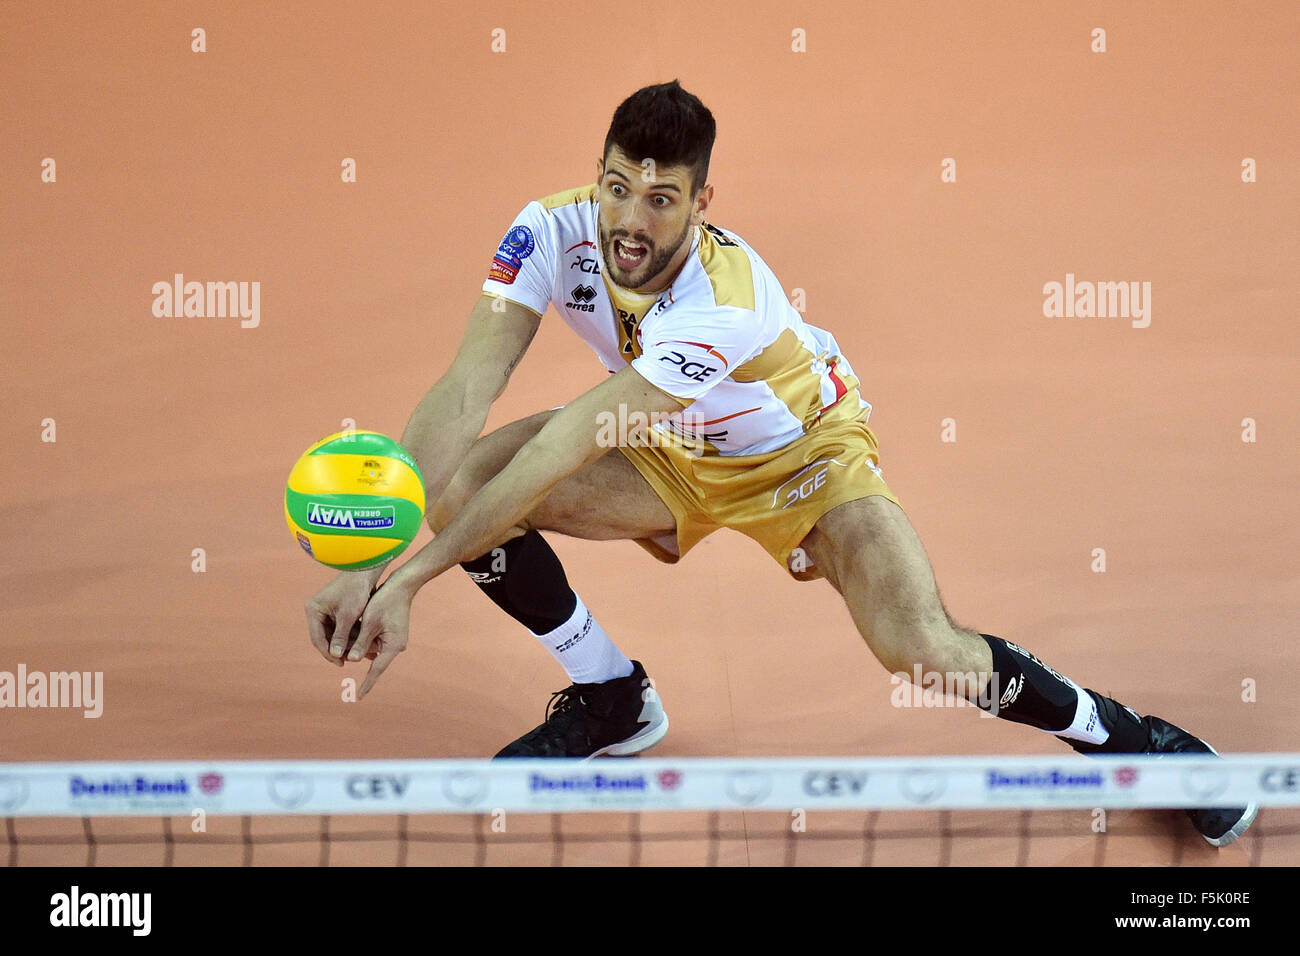 in belchatow stock photos in belchatow stock images alamy liberec 05th nov 2015 men s volleyball champions league 1st round